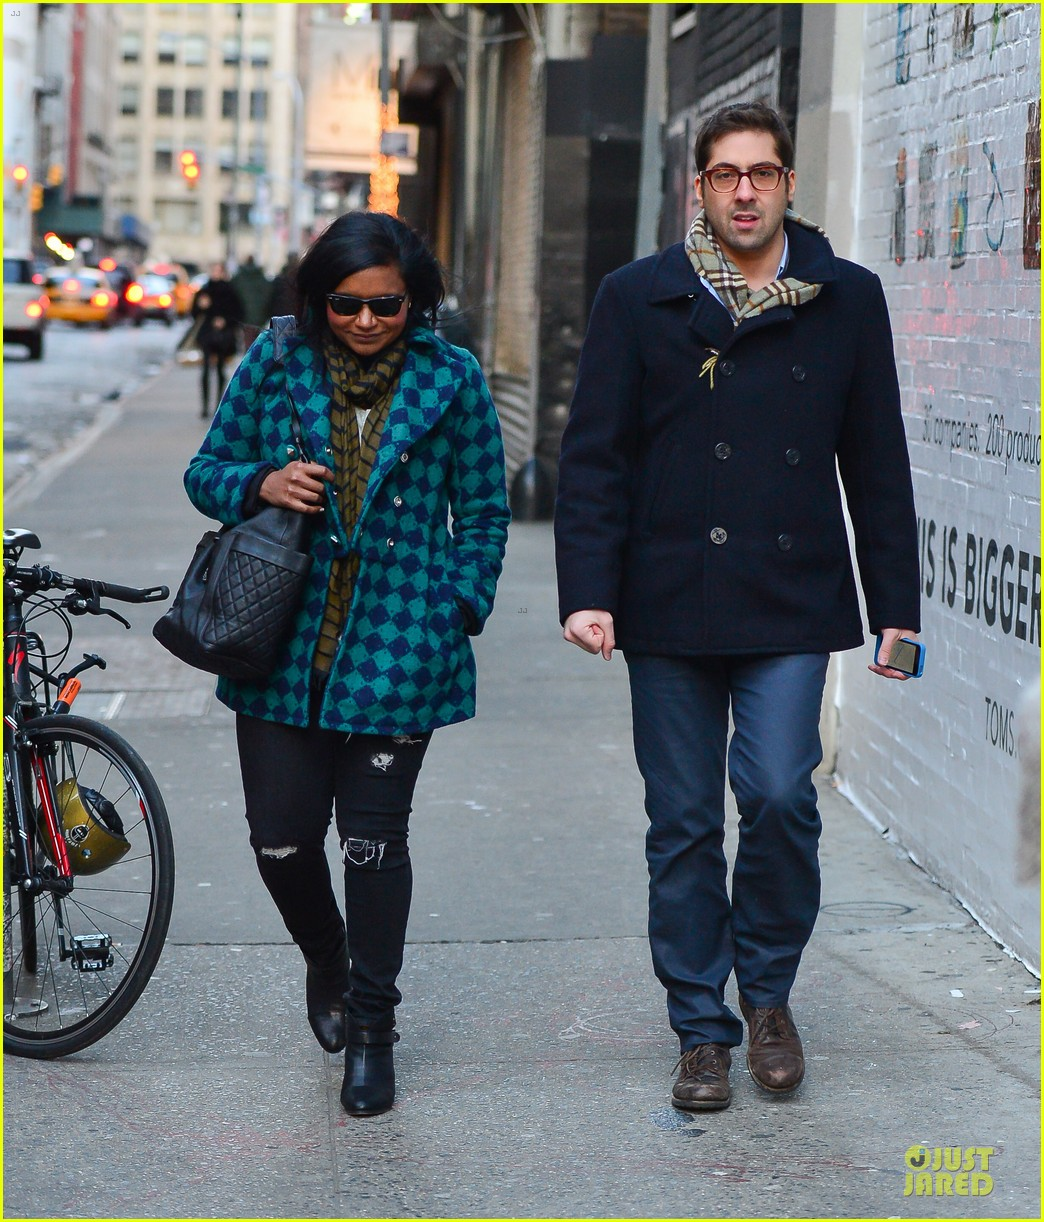 mindy kaling christmas eve stroll with male pal in nyc 033017416